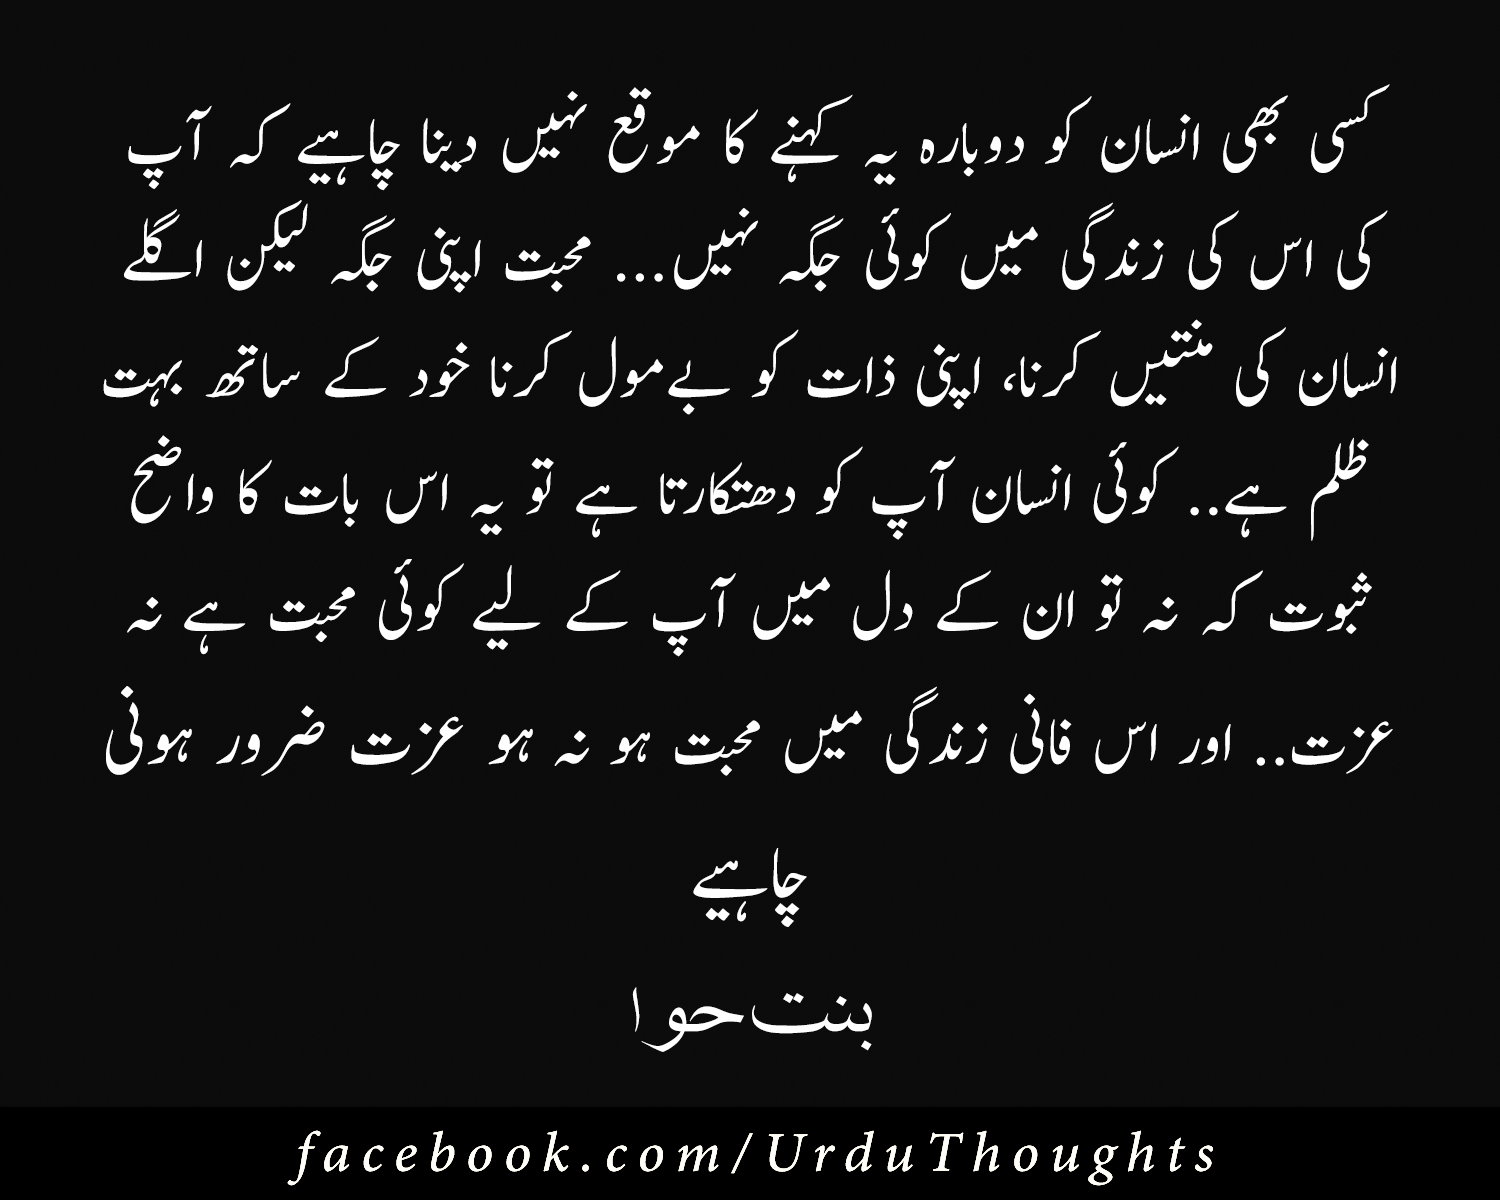 Quotes In Urdu Classy Best Awesome Beautiful Quotes In Urdu With Pictures  Urdu Thoughts